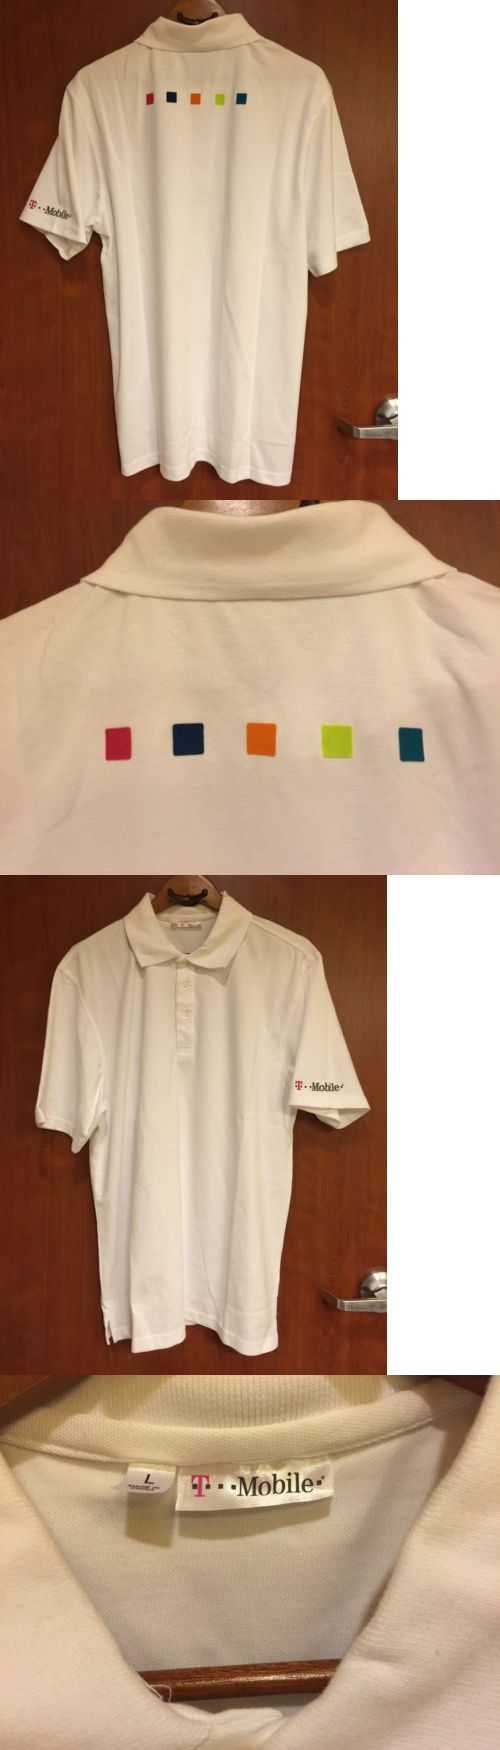 Shirts 175630: ?New?T-Mobile Employee Work Uniform Store?Sz L Golf Polo T Shirt 5 Color Logo -> BUY IT NOW ONLY: $34.99 on eBay!